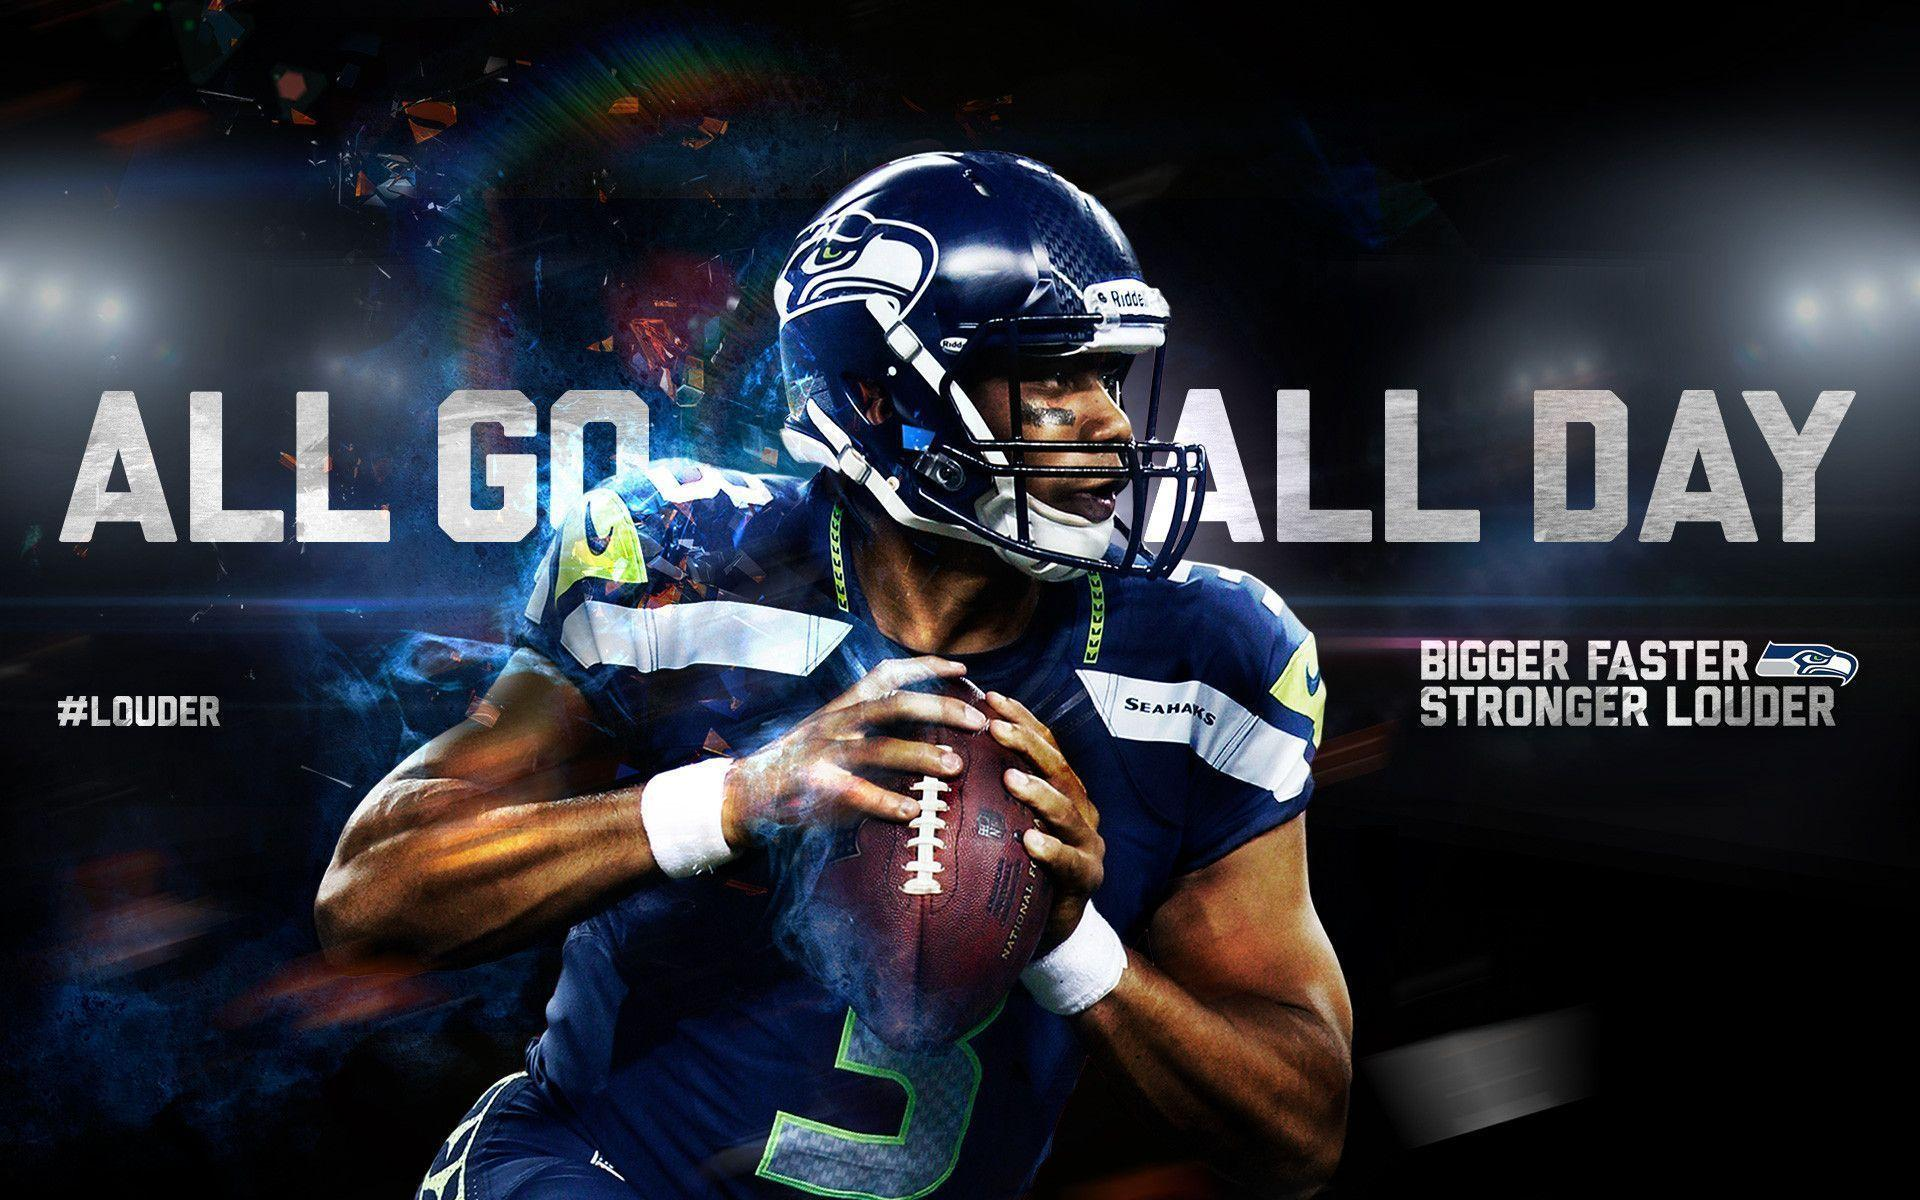 seahawks high resolution wallpaper - photo #34